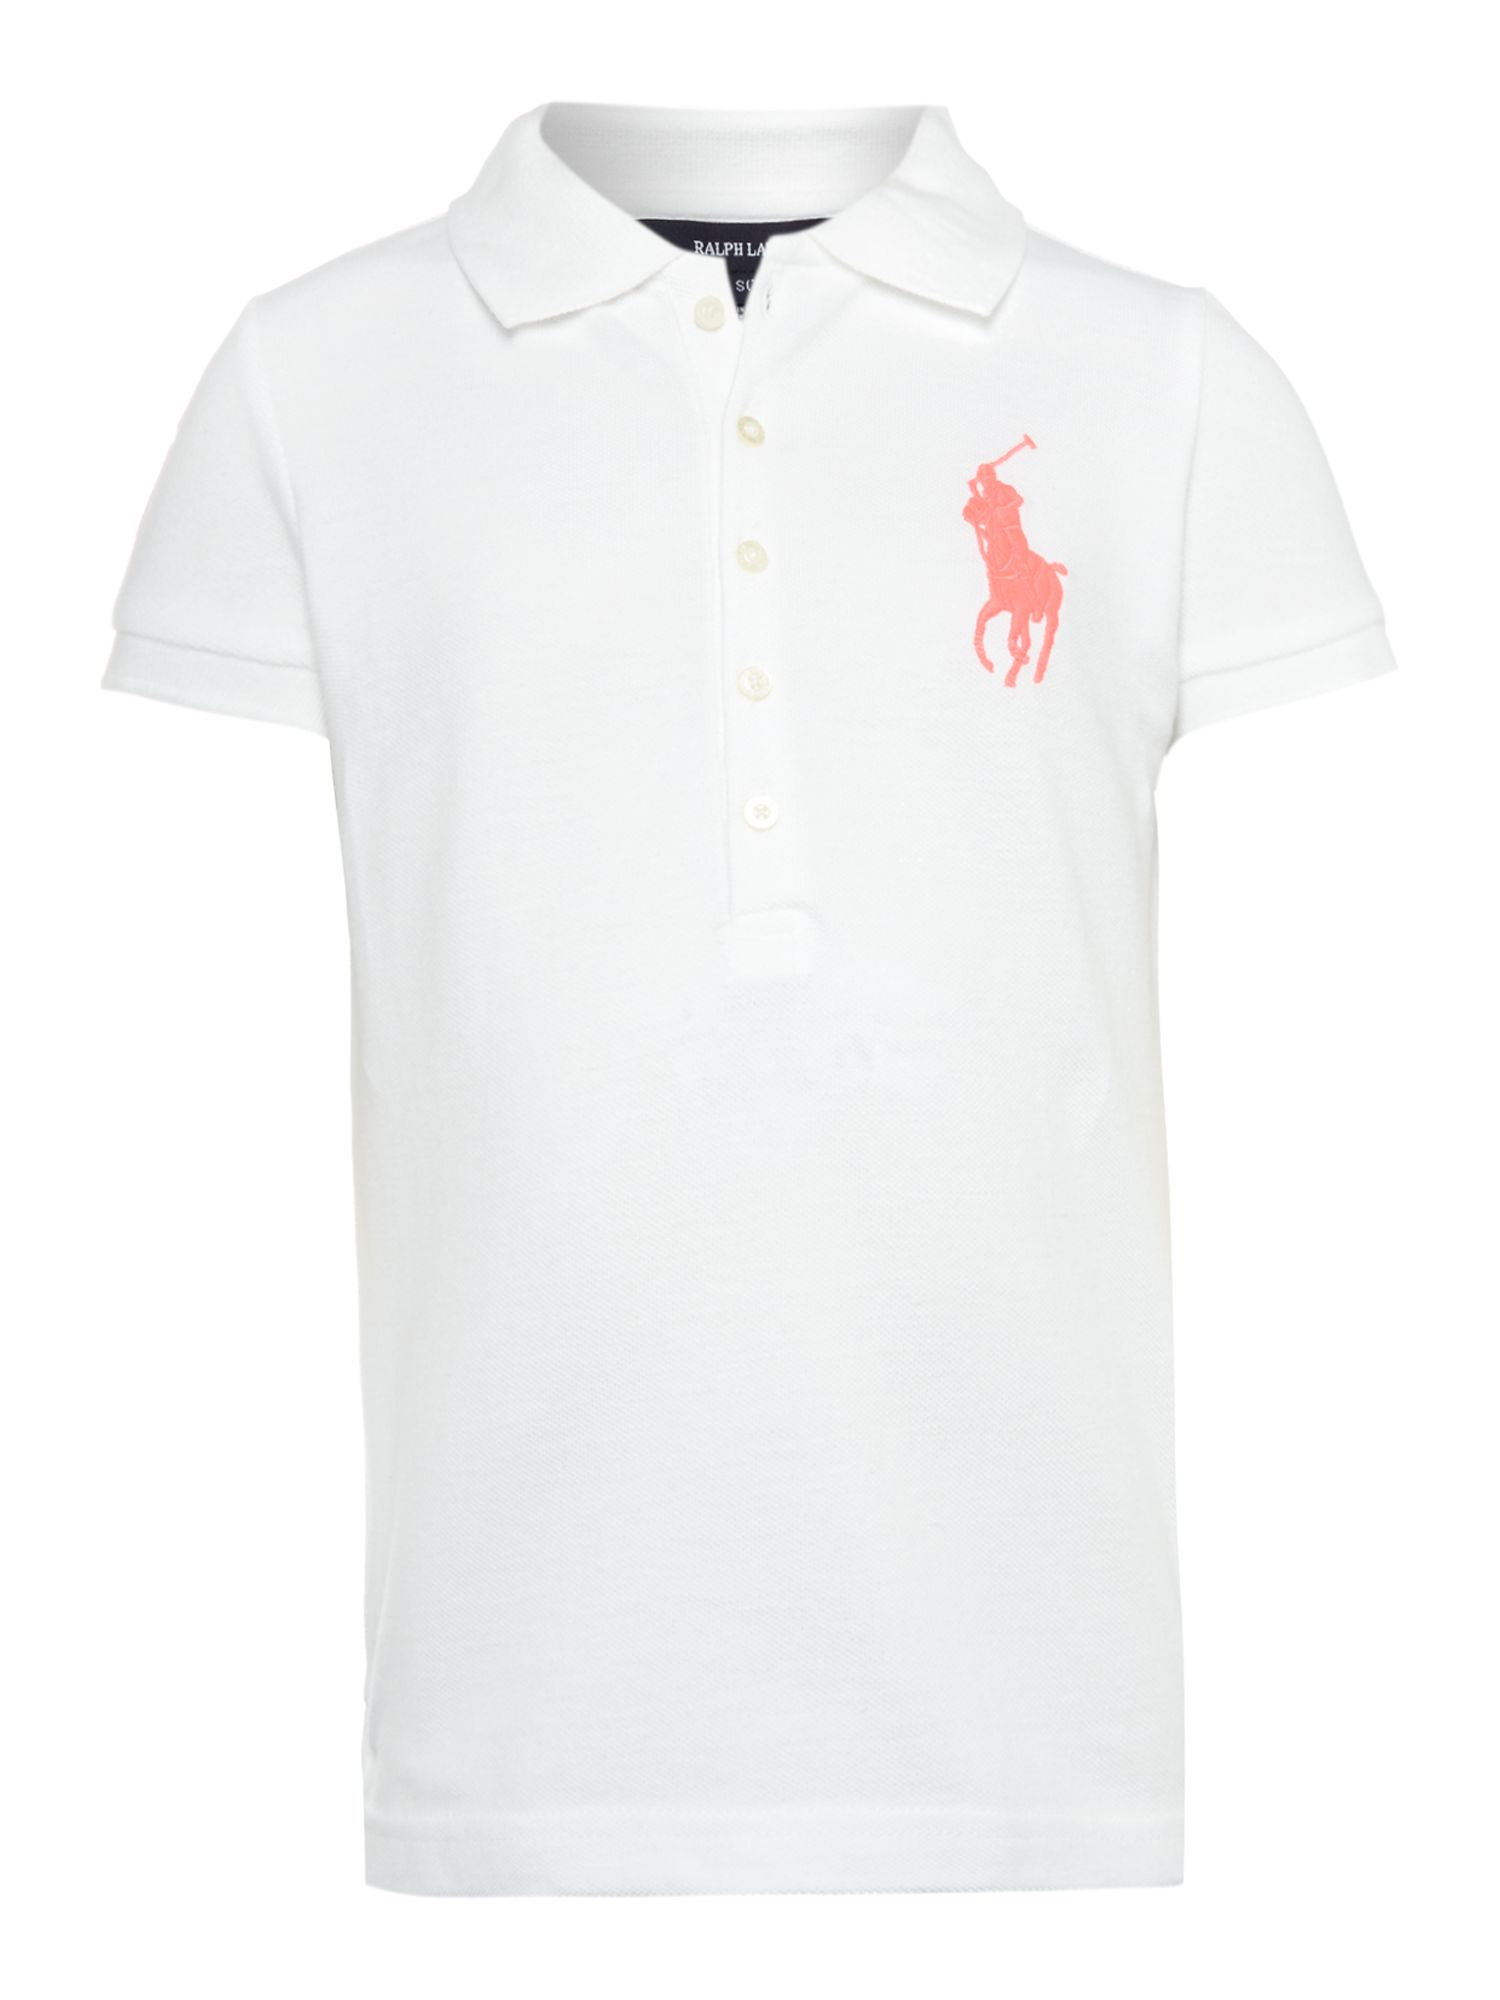 Girls large pony polo